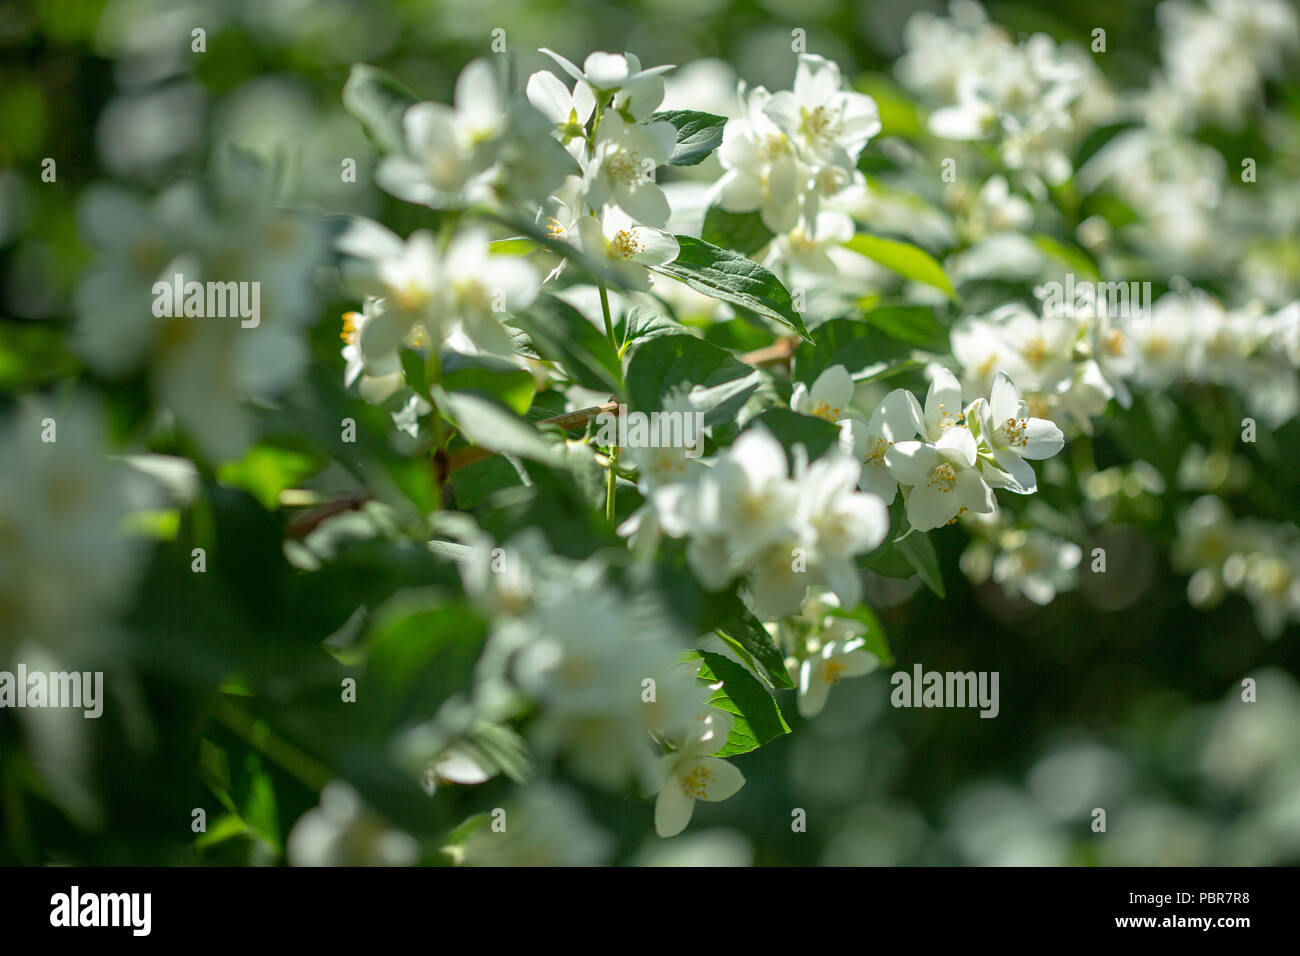 Beautiful blooming jasmine branch with white flowers at sunlight in beautiful blooming jasmine branch with white flowers at sunlight in summer sunny day tender white petals and yellow stamens of jasmine flowers close izmirmasajfo